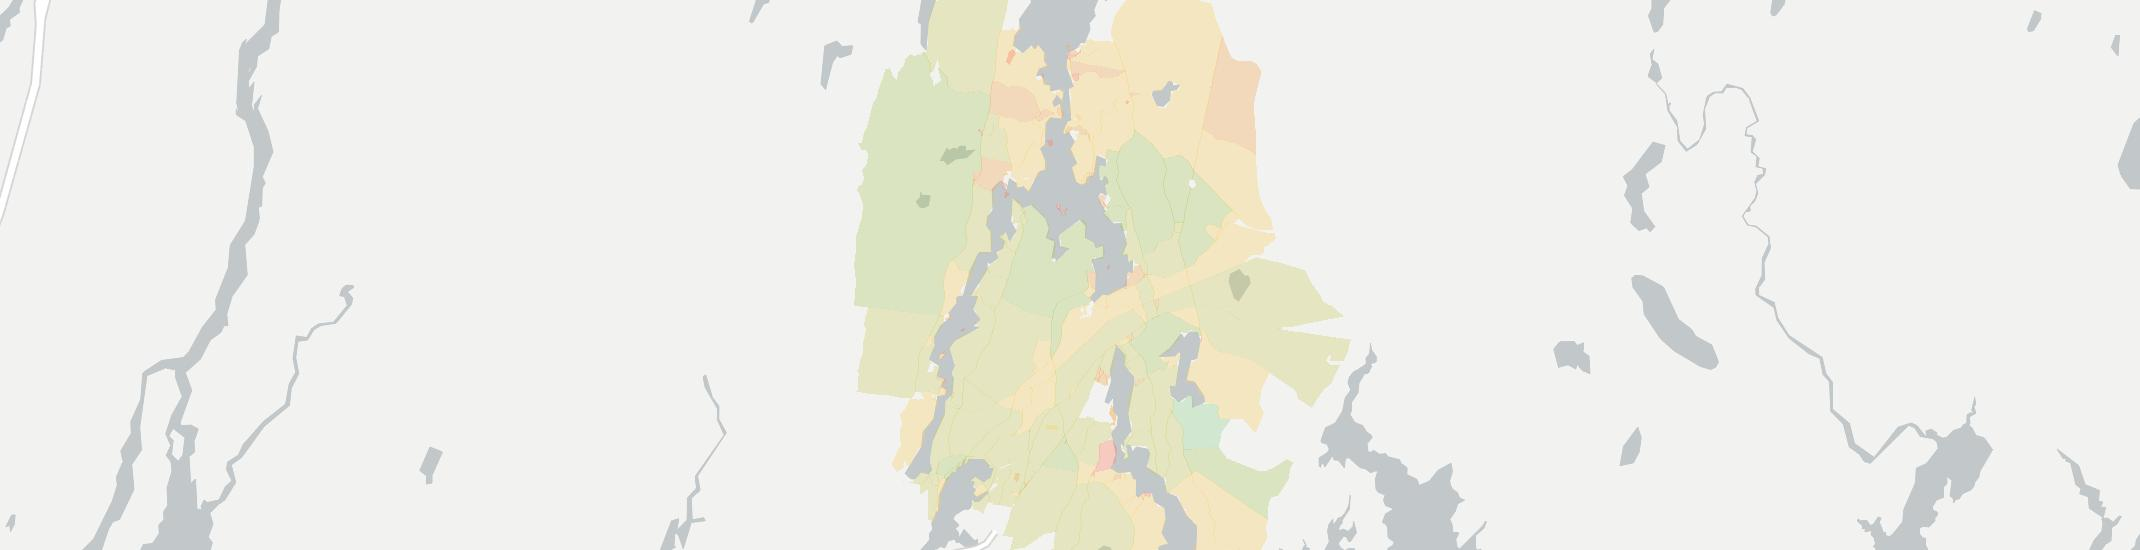 Nobleboro Internet Competition Map. Click for interactive map.